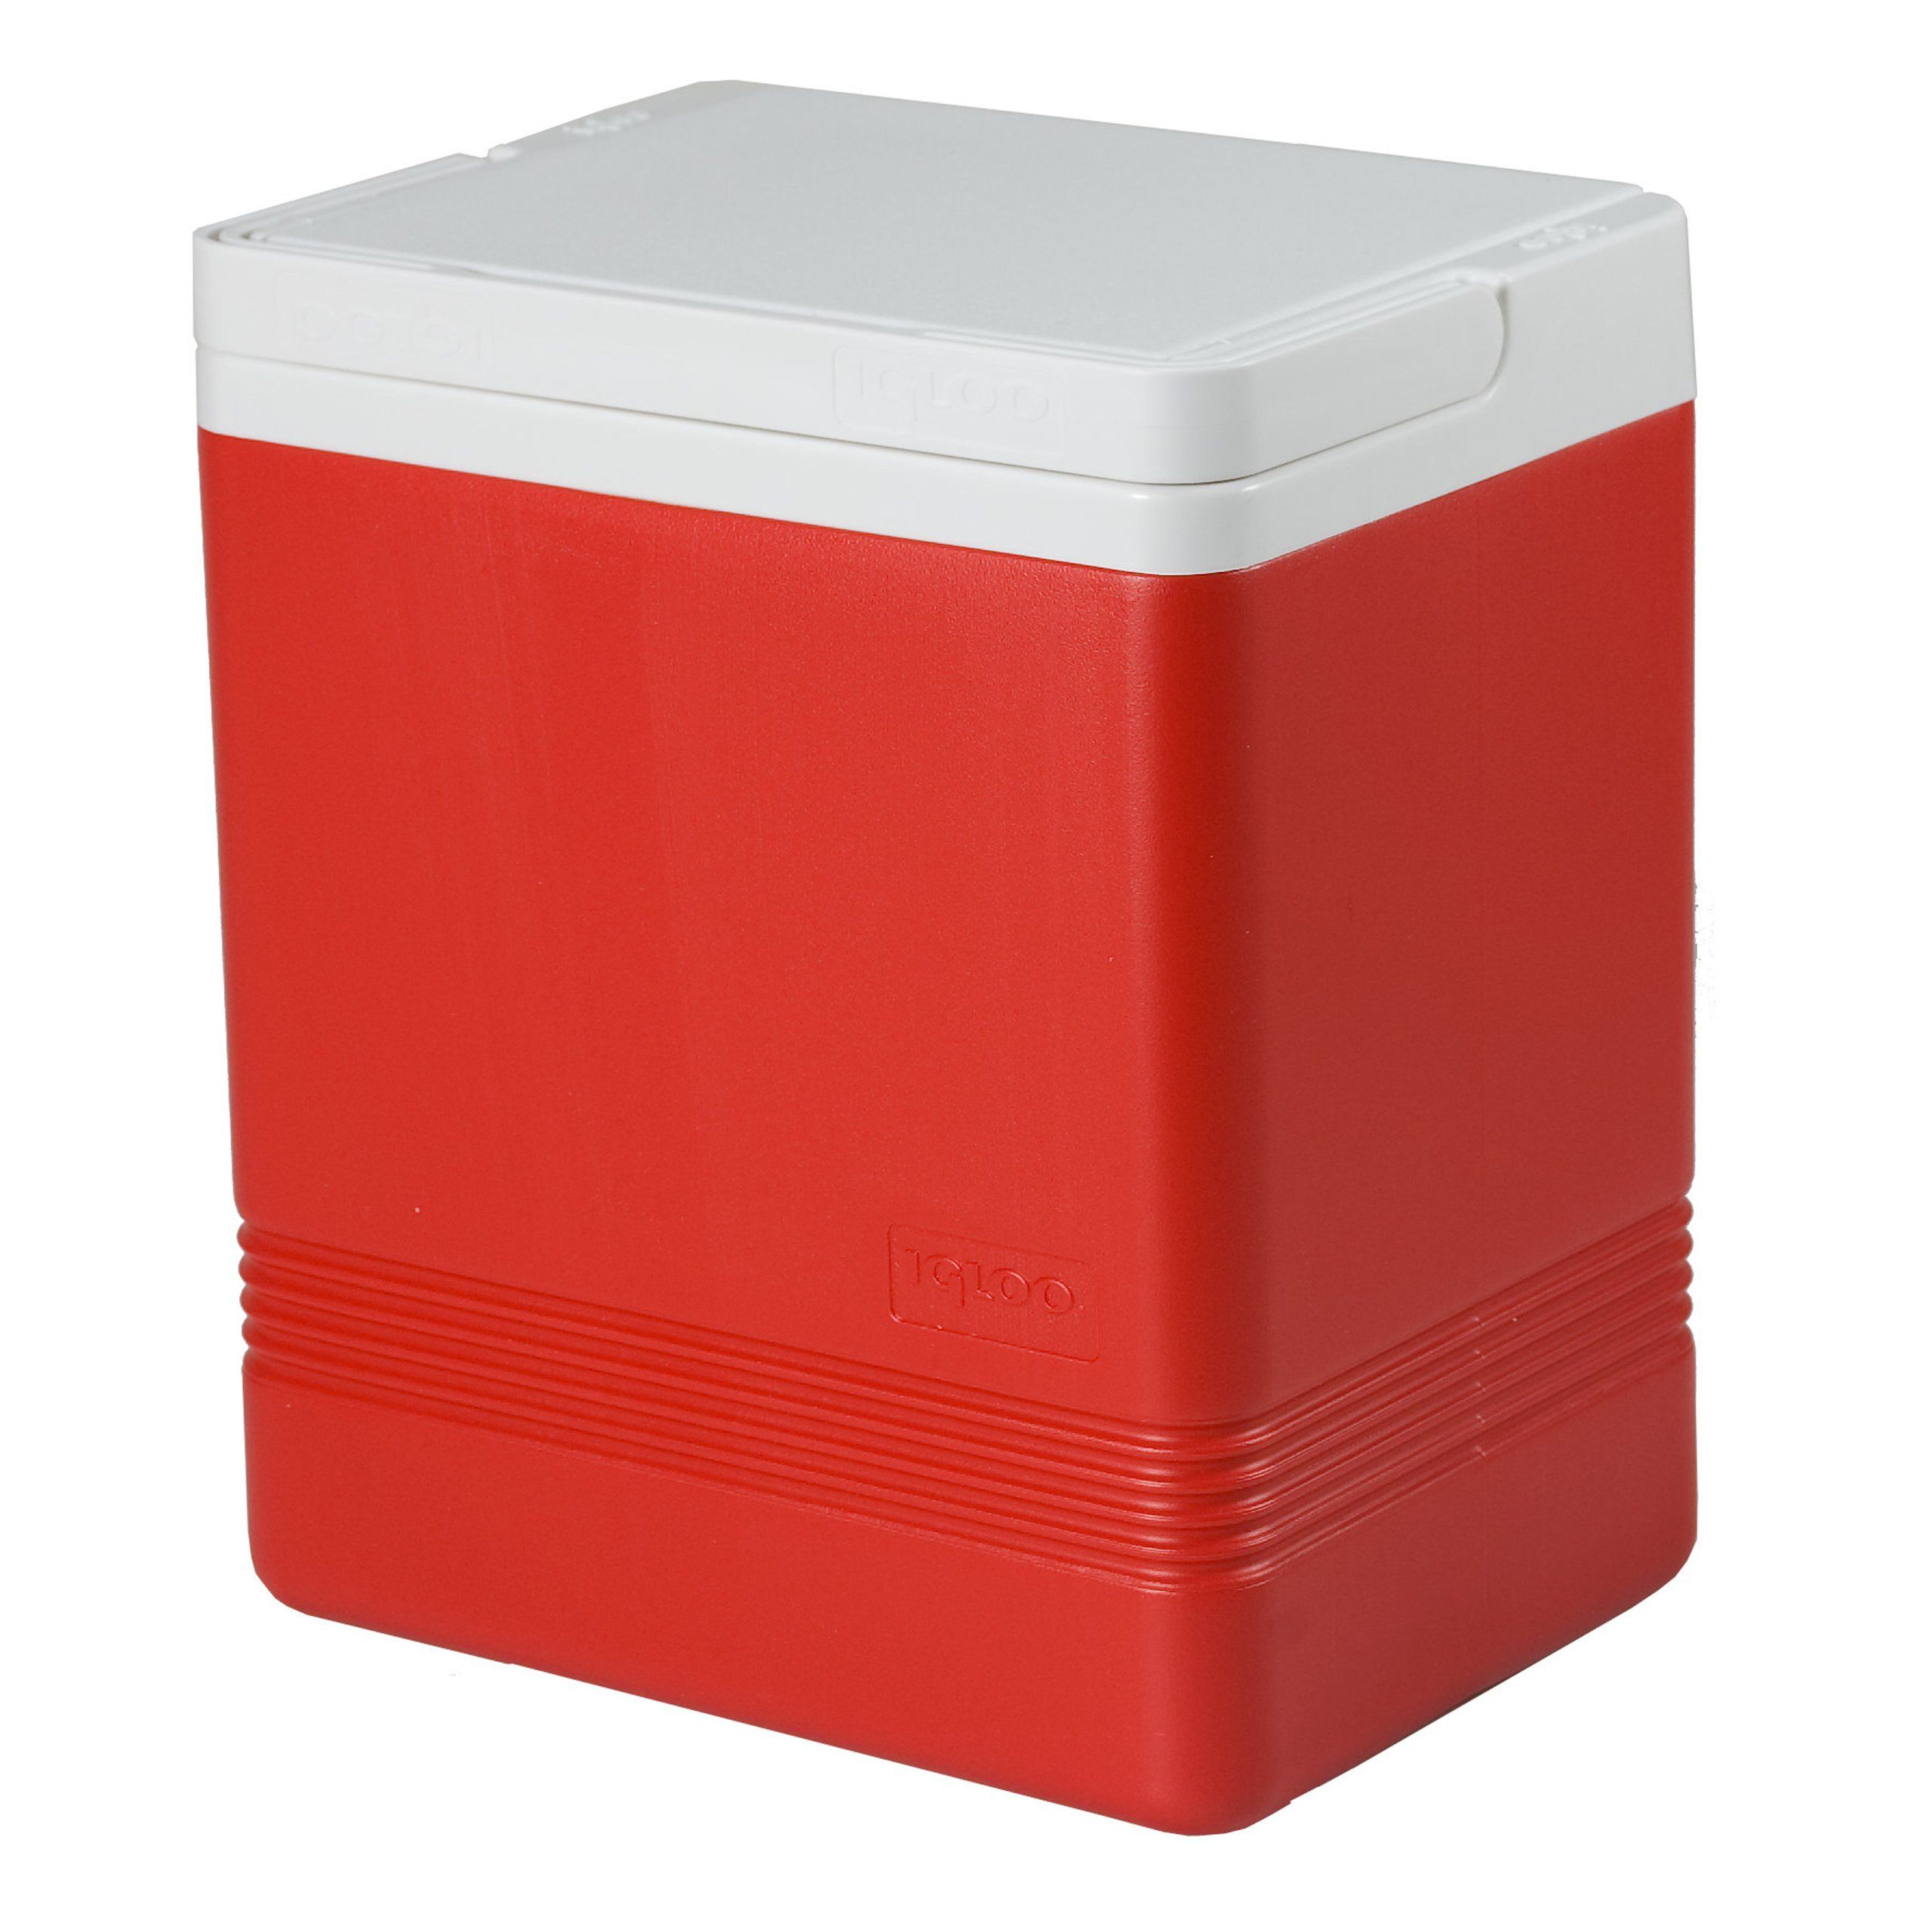 Igloo Legend Cooler 24 Can Capacity Red Check This Awesome Product By Going To The Link At The Image This Is An Affili In 2020 Cooler Igloo Personalized Coolers